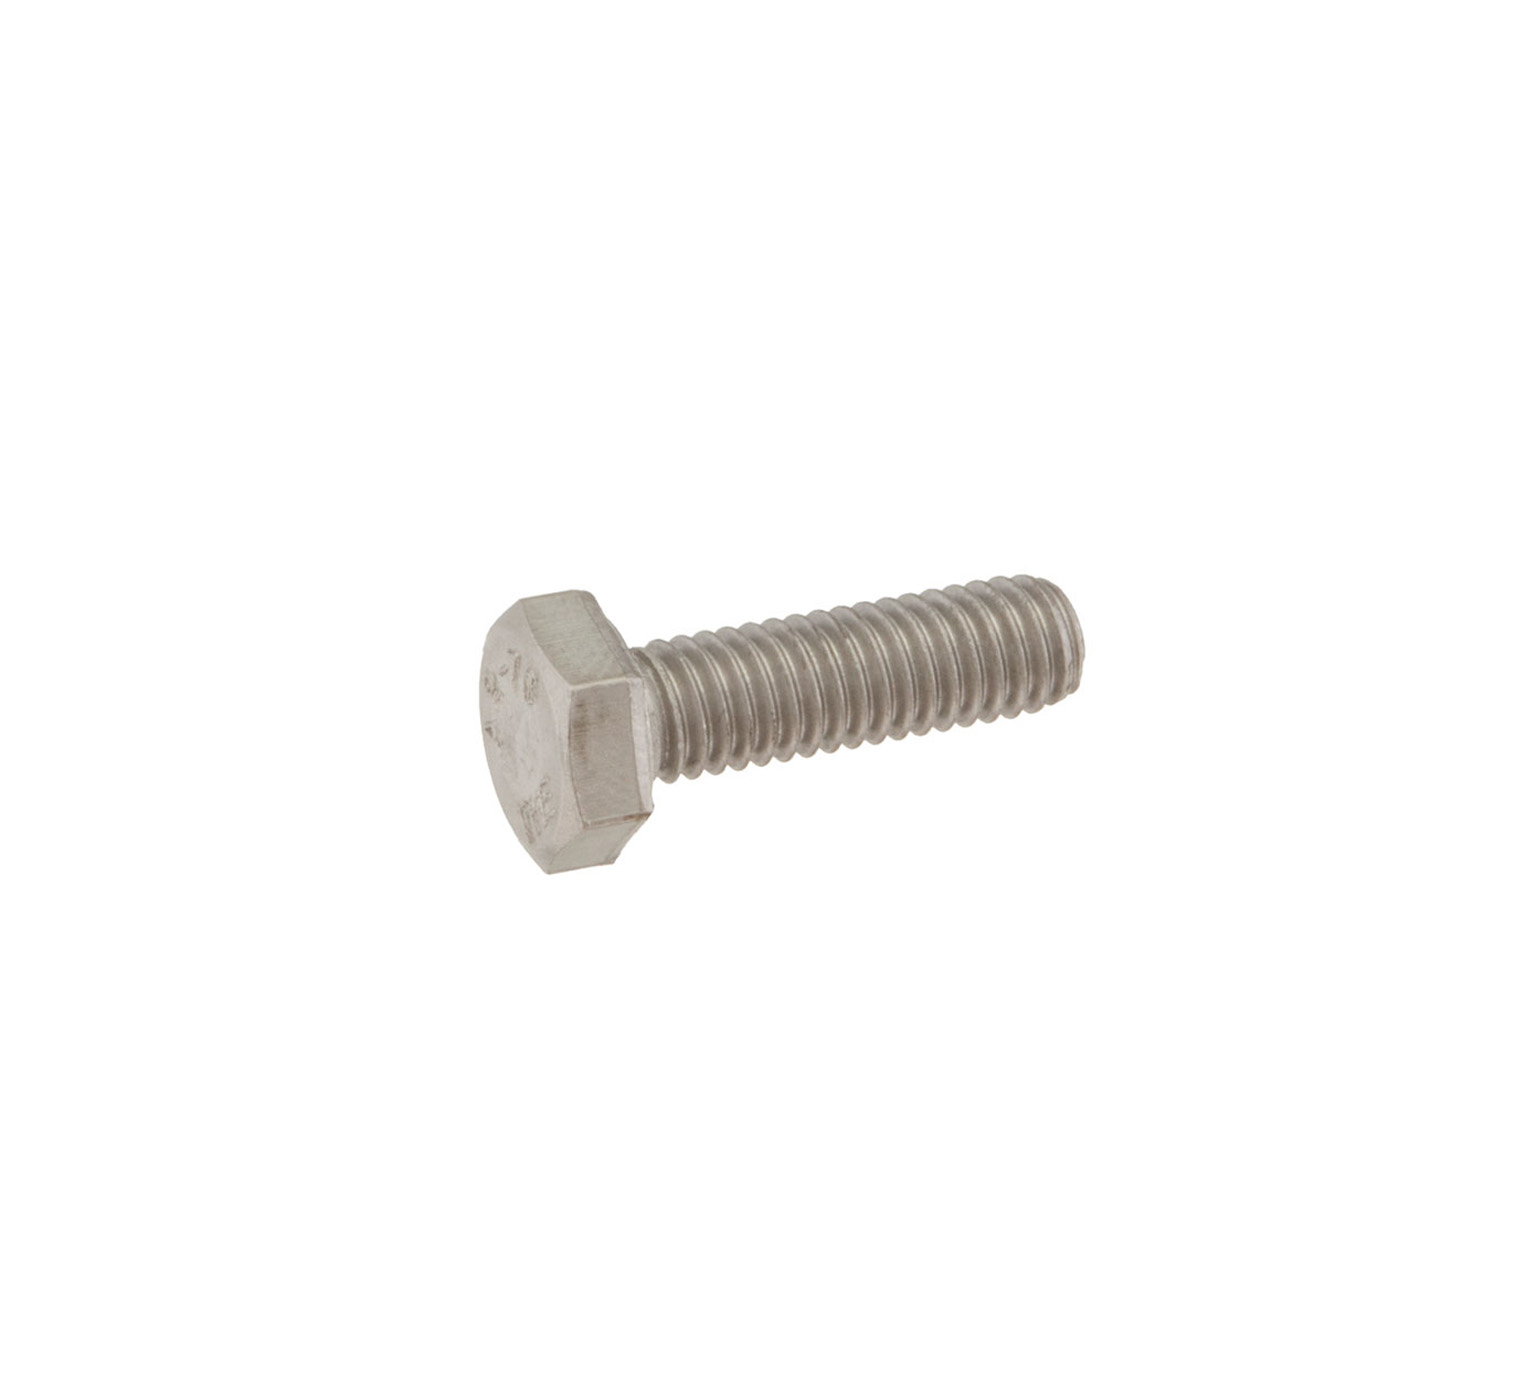 08716 Stainless Steel Hex Screw - M6 Thread x 0.75 in alt 1